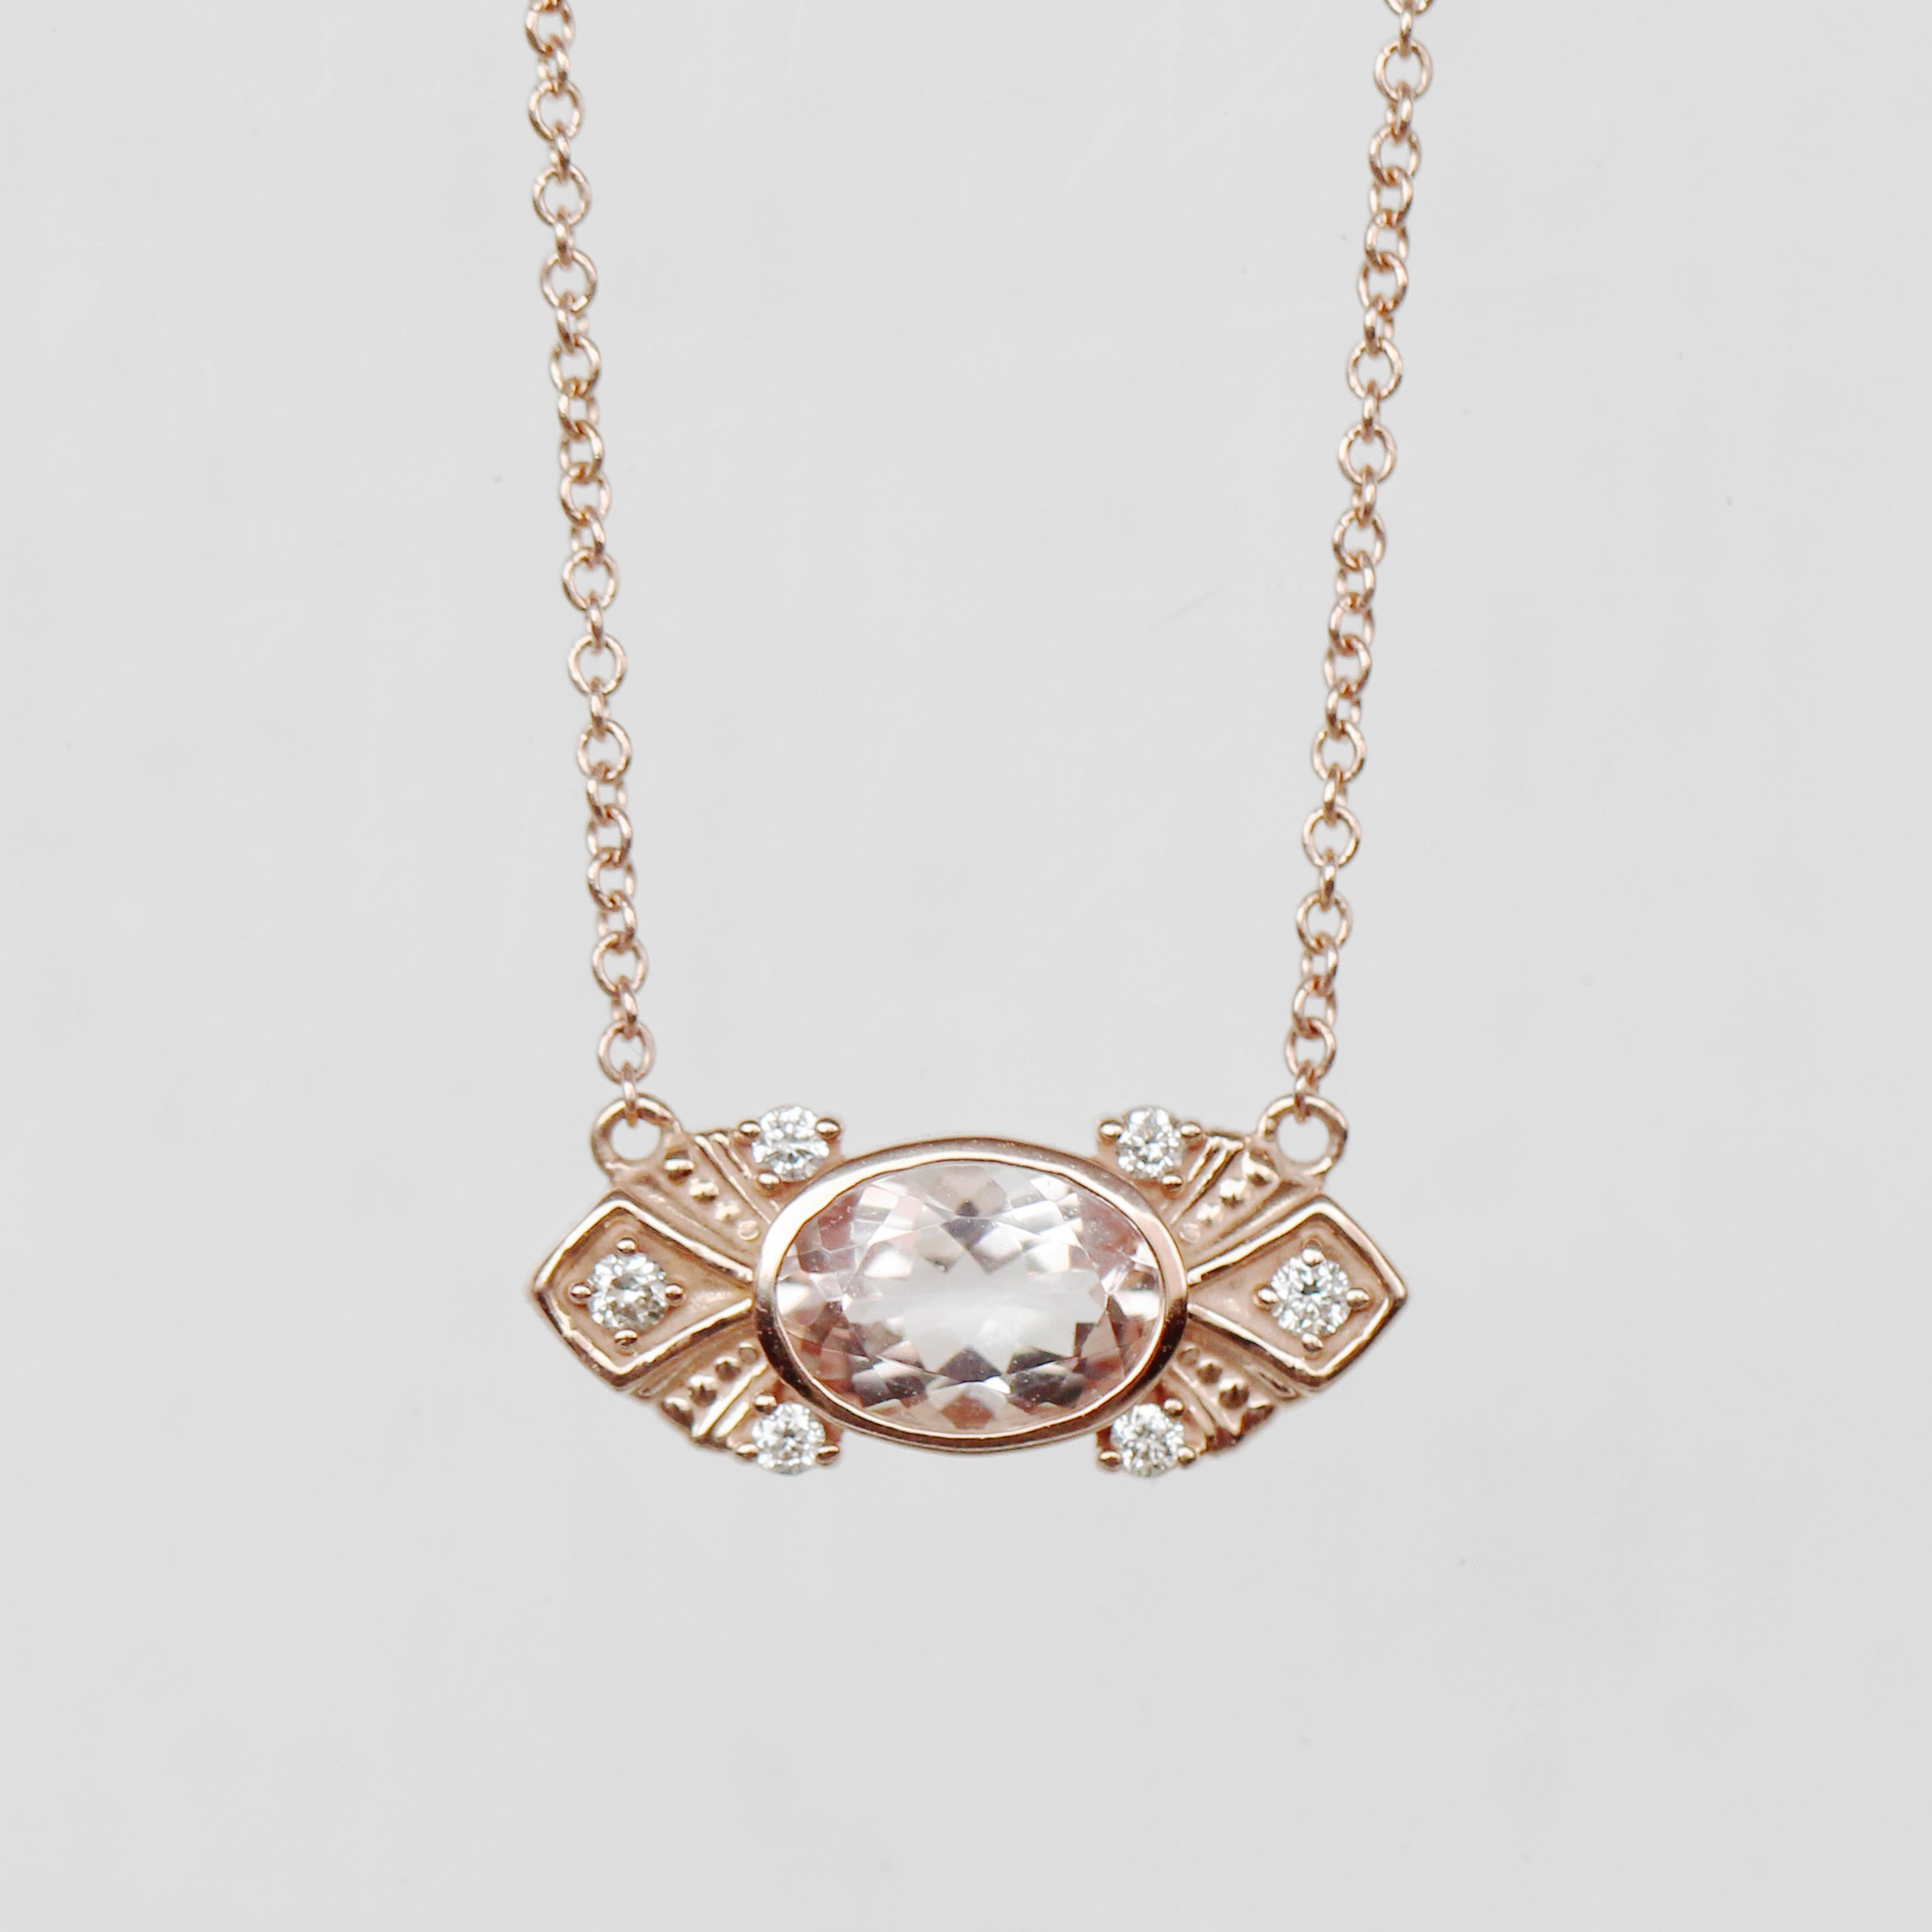 Parker Necklace with Morganite and Diamonds - 14k Gold - Made to Order - Celestial Diamonds ® by Midwinter Co.